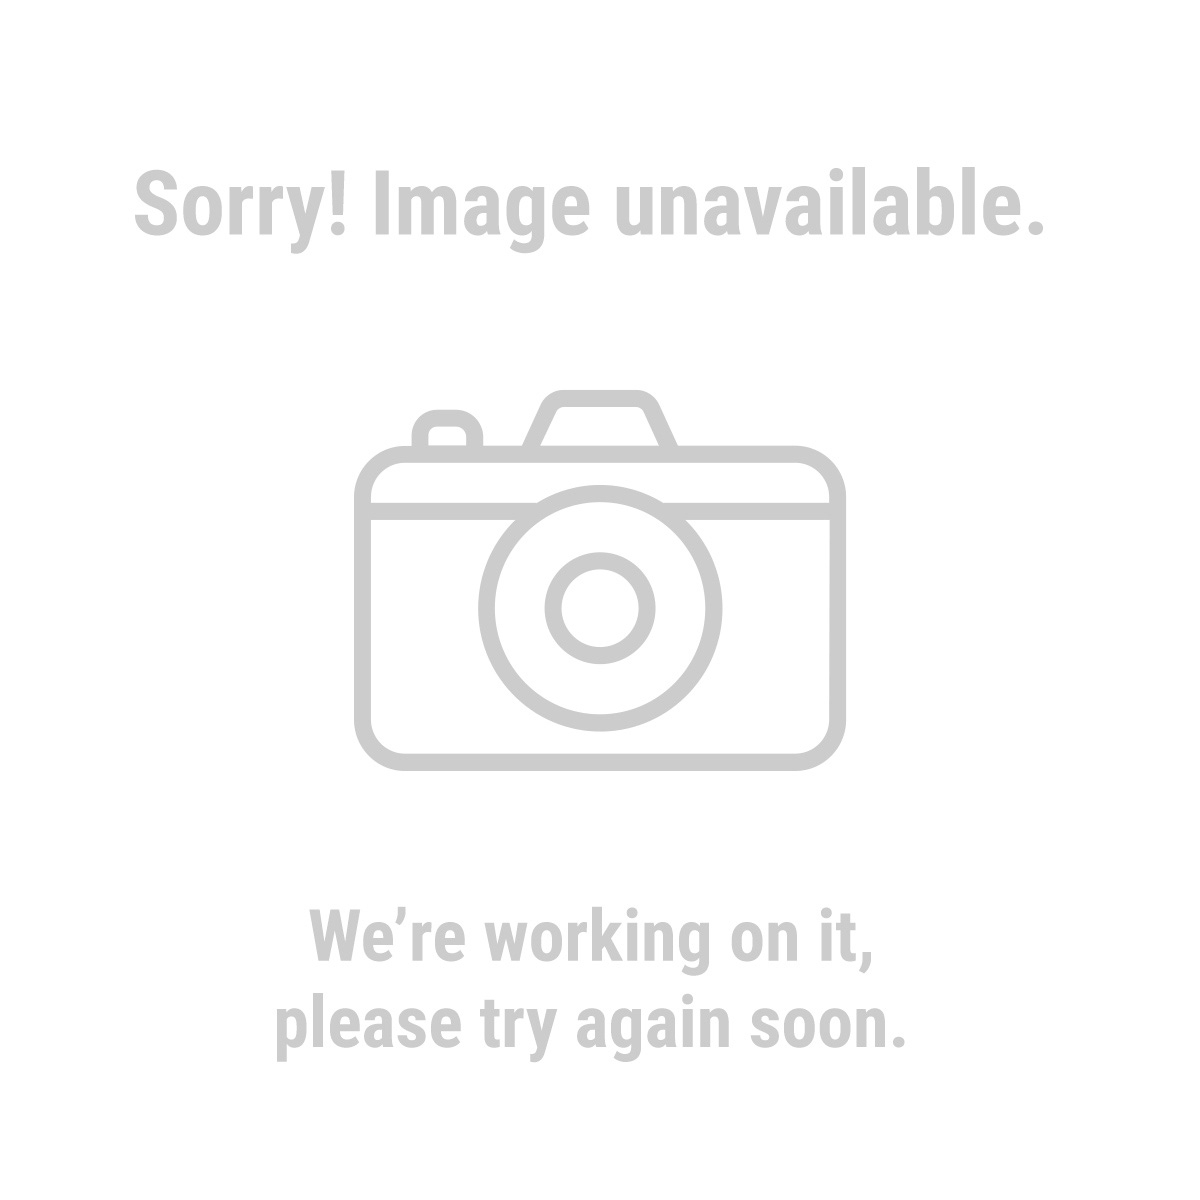 Warrior® 61312 6 Piece Triangle Sandpaper Assortment for Wood